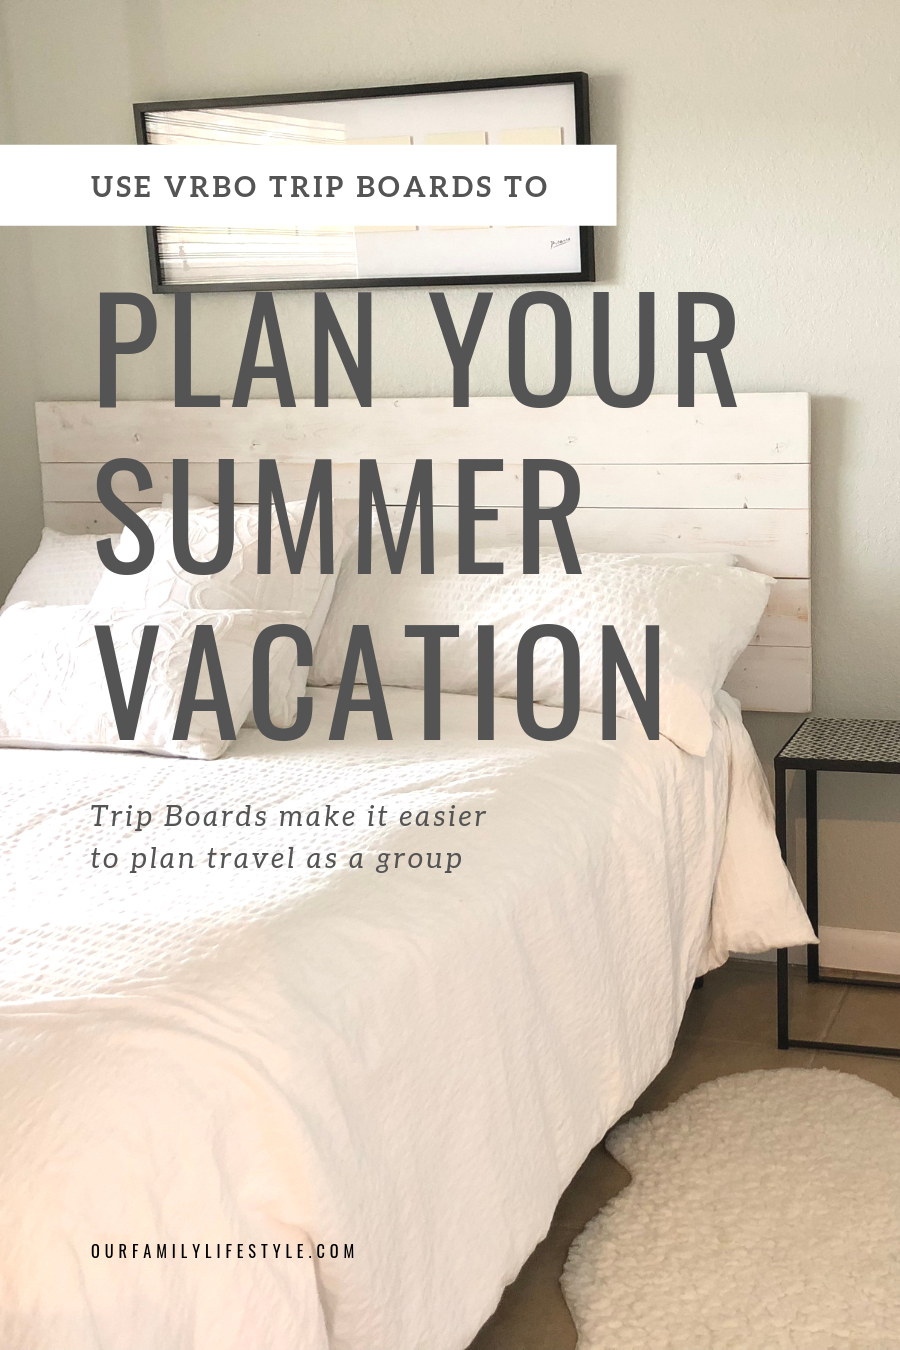 Easily Use Vrbo Trip Boards to Plan Your Summer Vacation